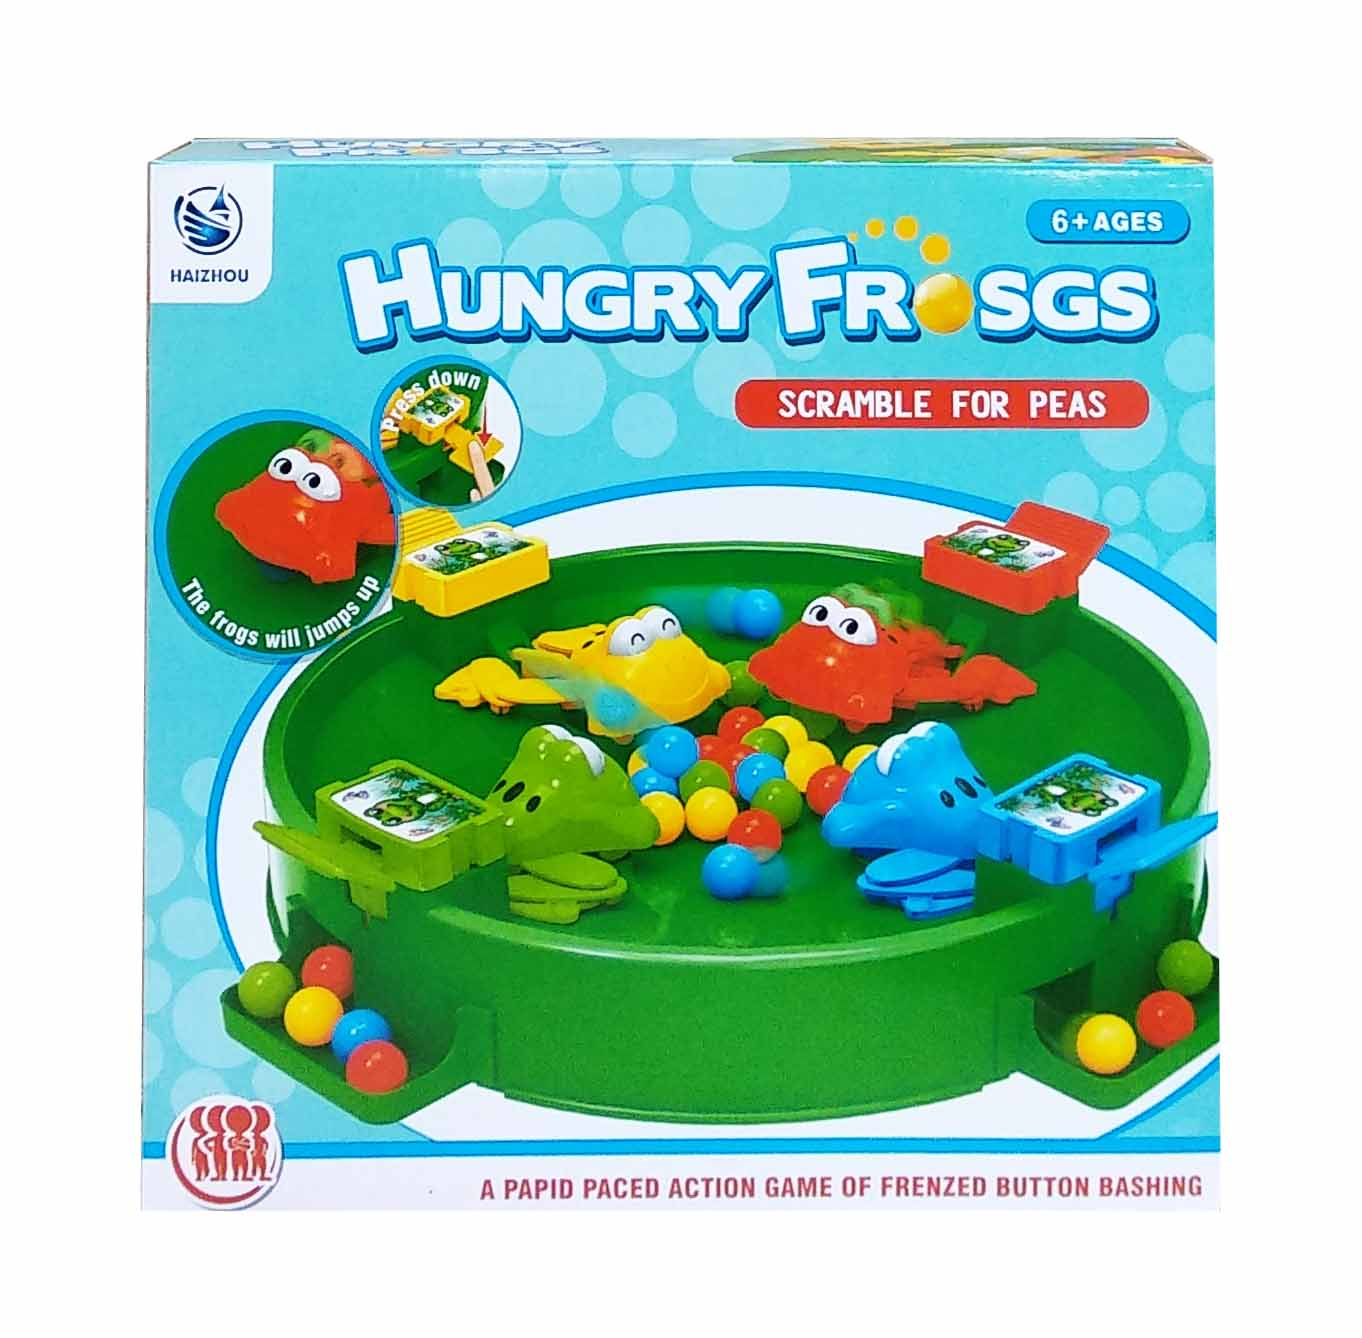 toko mainan online HUNGRY FROGS 4 PLAYERS - HZ-024